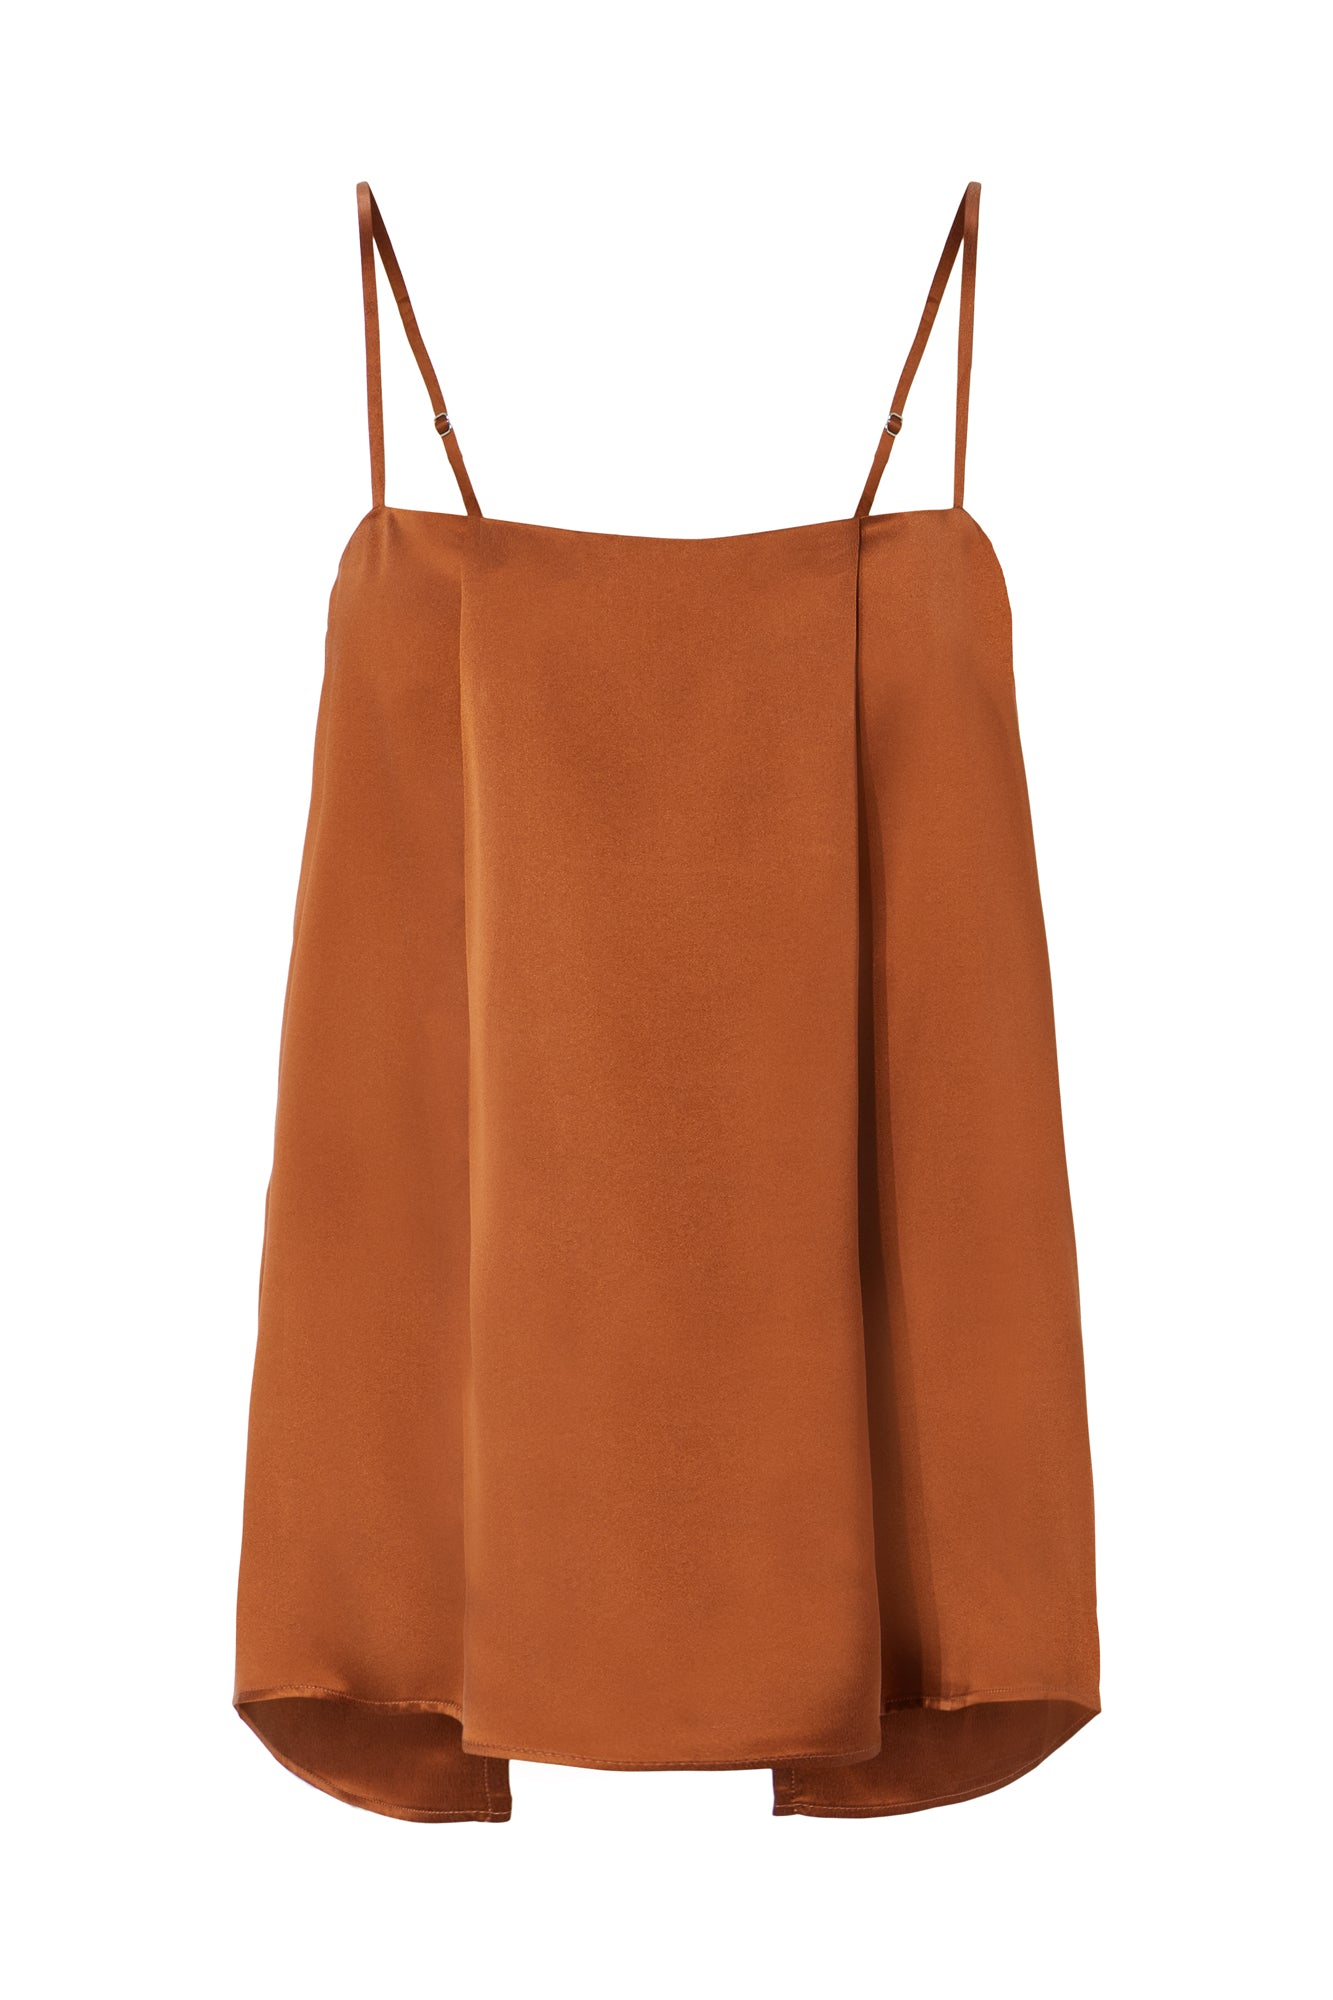 Lucie Top - Terracotta